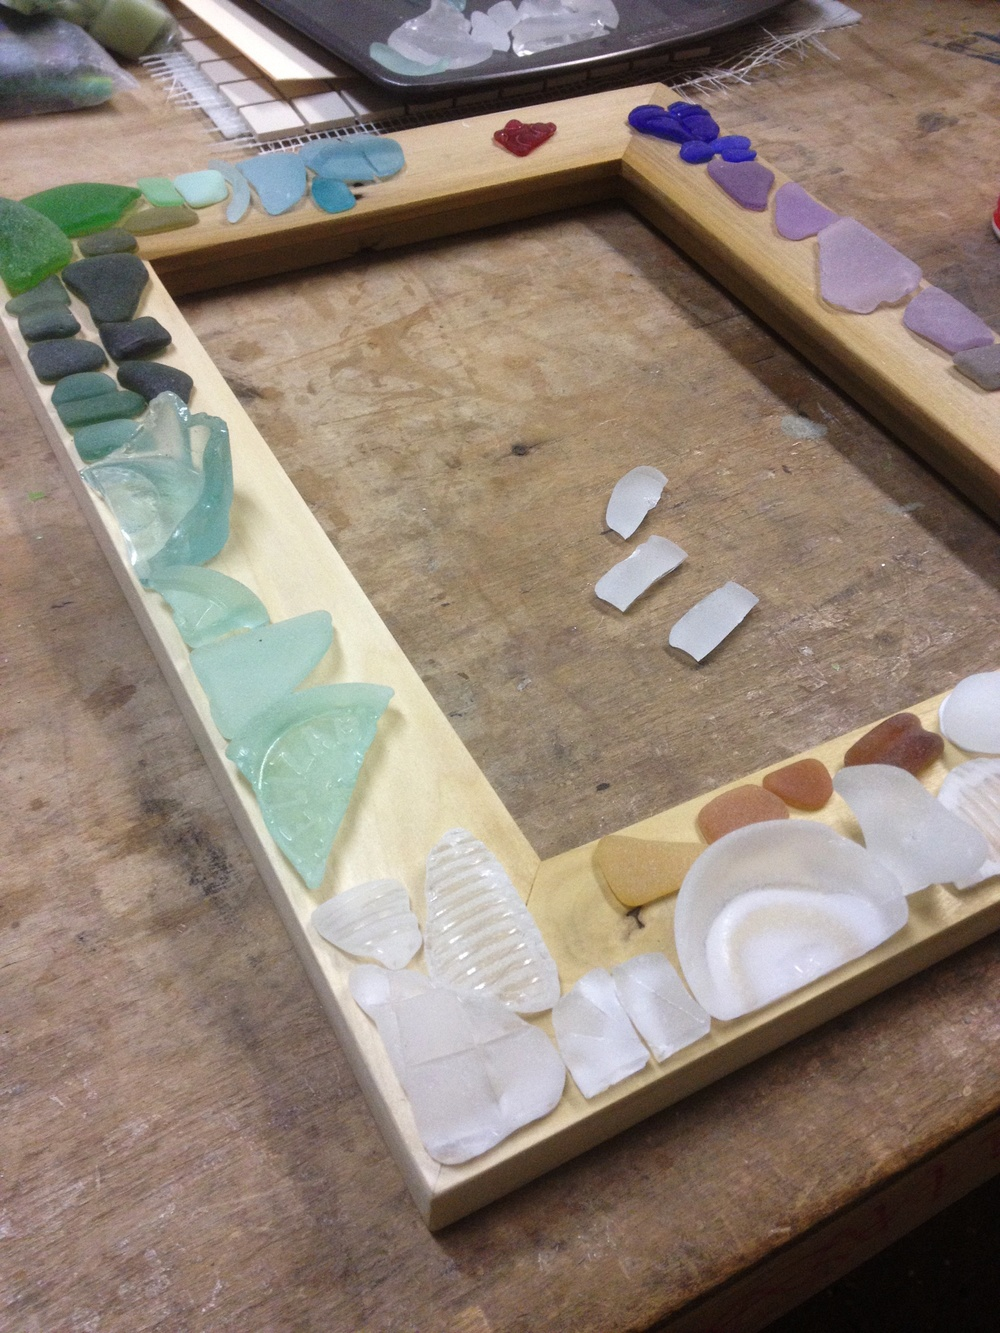 Custom seaglass mosaic mirror in progress